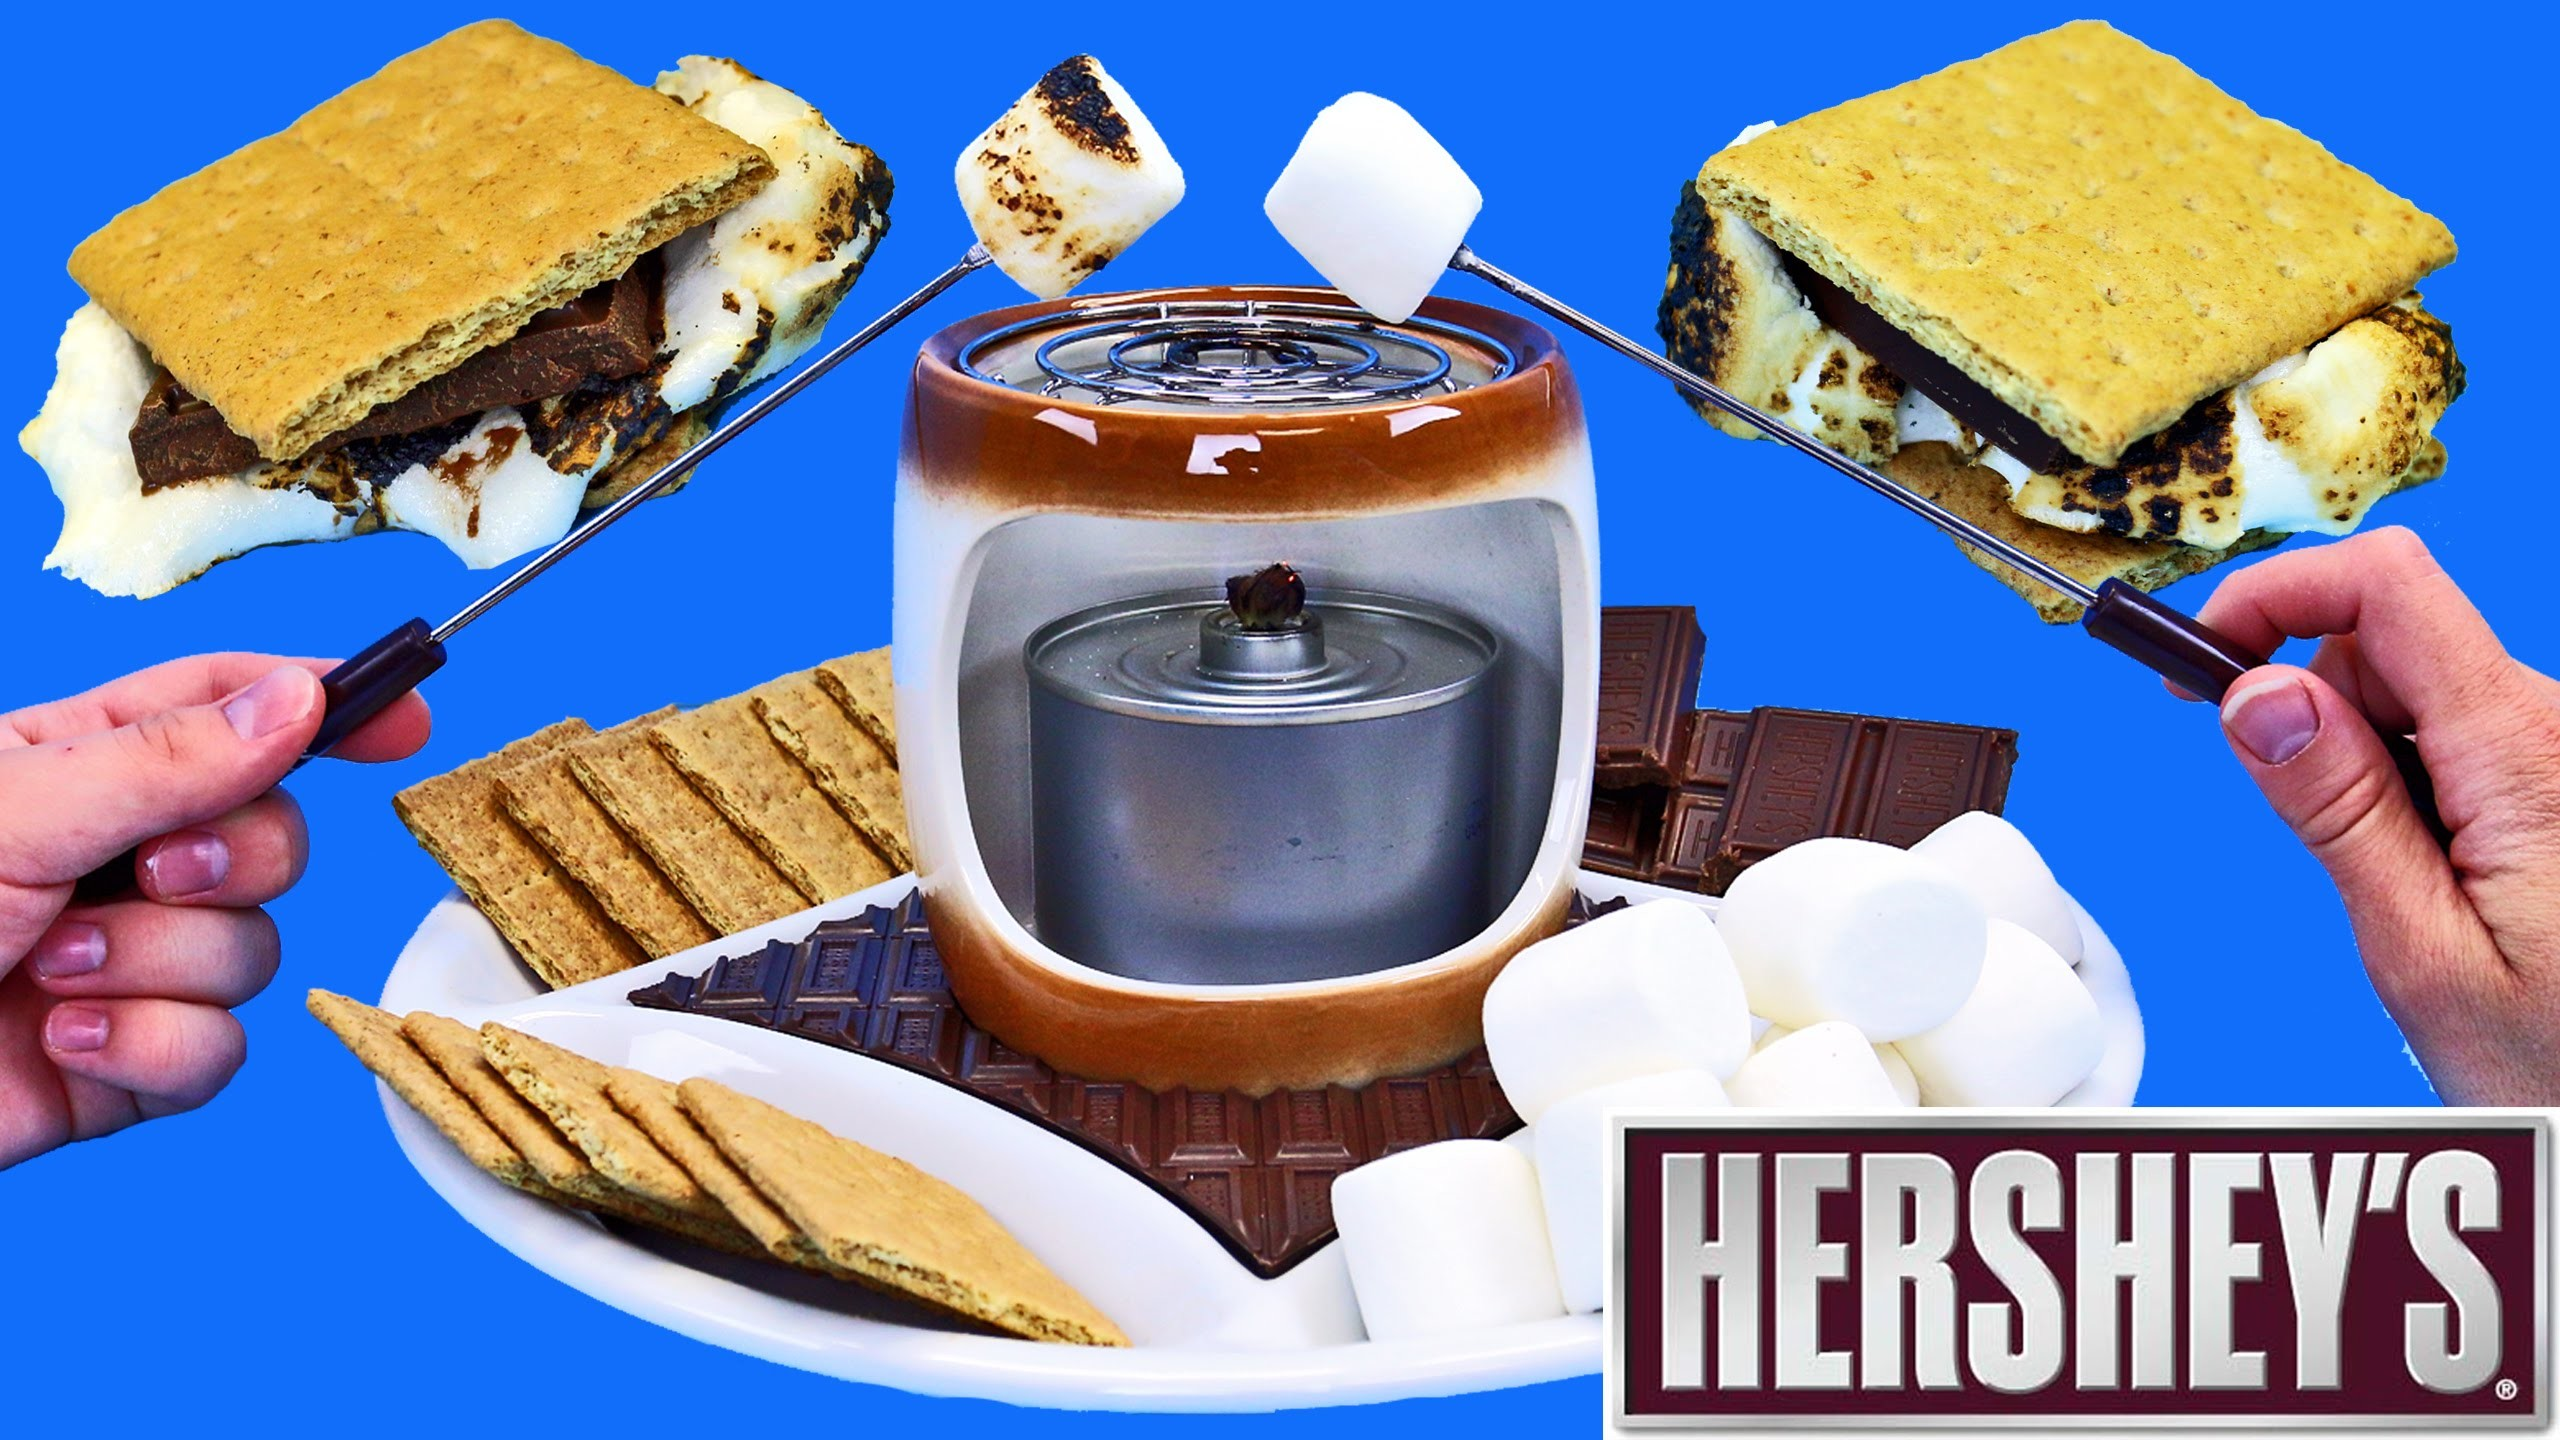 Hershey's Chocolate S'Mores Maker DIY Indoor Smores + DIY Chocolate Candy Dessert by DisneyCarToys